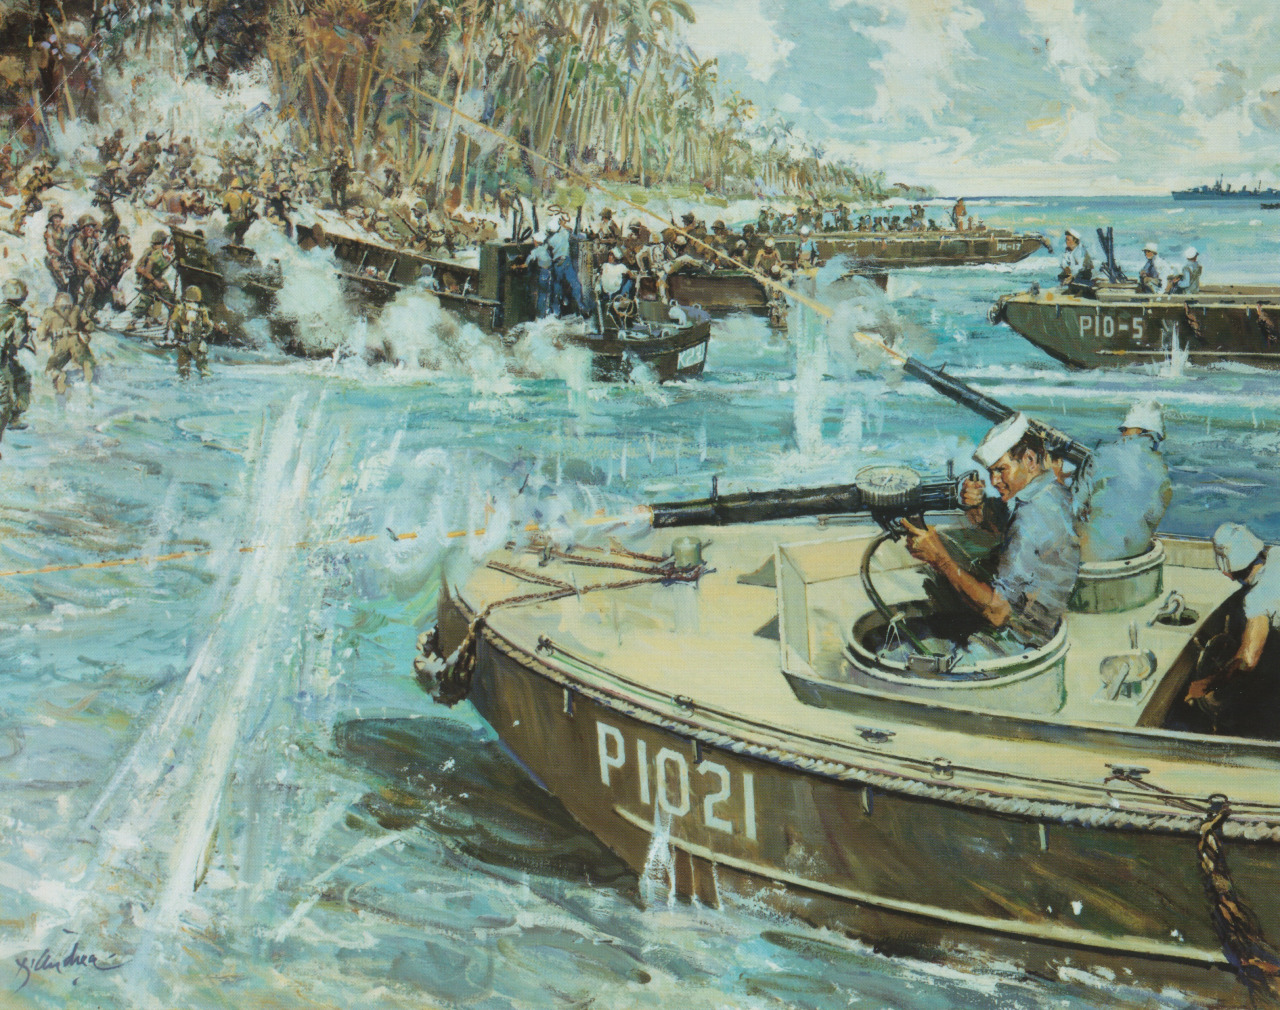 Douglas A. Munro Covers the Withdrawal of the 7th Marines at Guadalcanal by Bernard D'Andrea. Click to big up. Note the Lewis guns